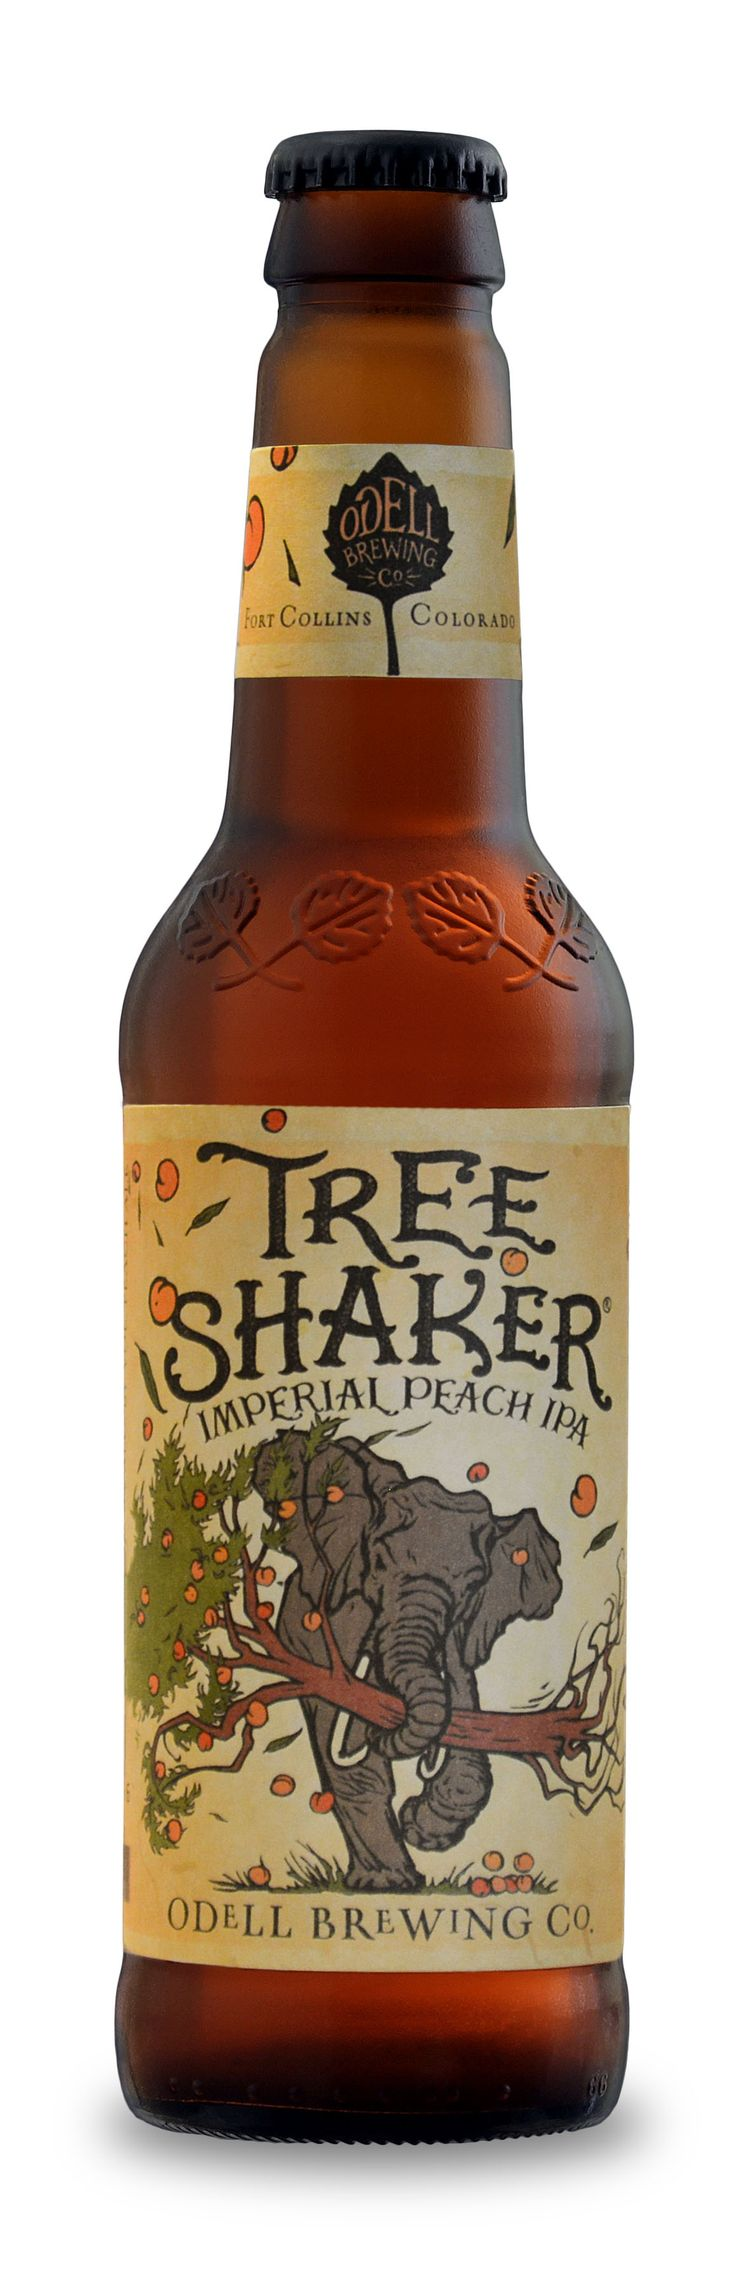 Tree Shaker Imperial Peach IPA #OdellBrewing #CraftBeer